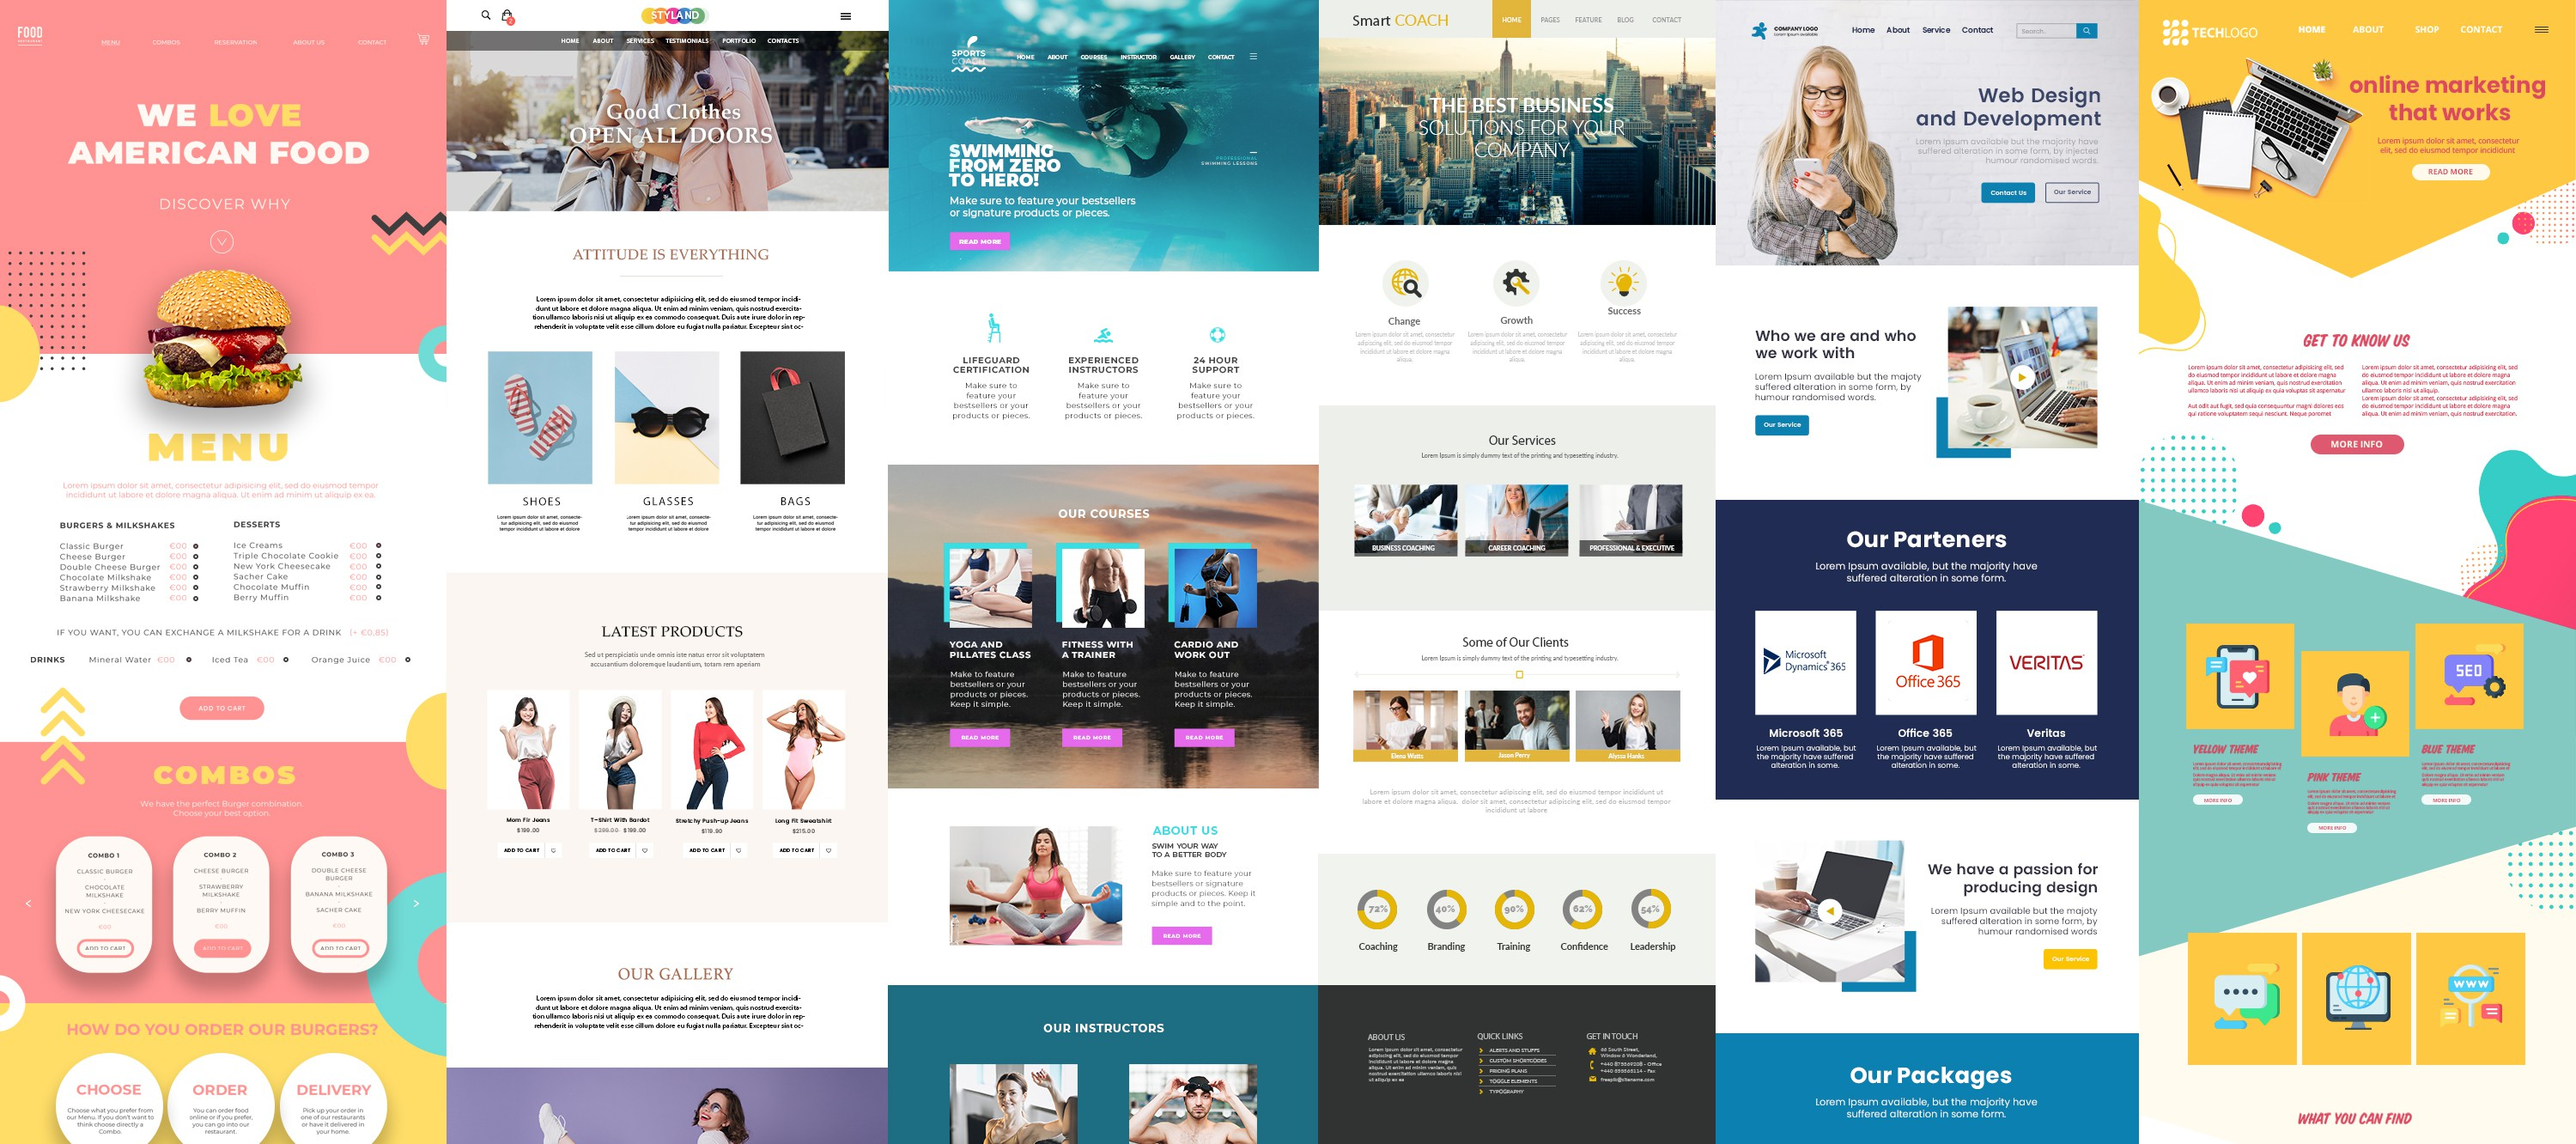 We need a stand-out creative homepage banner